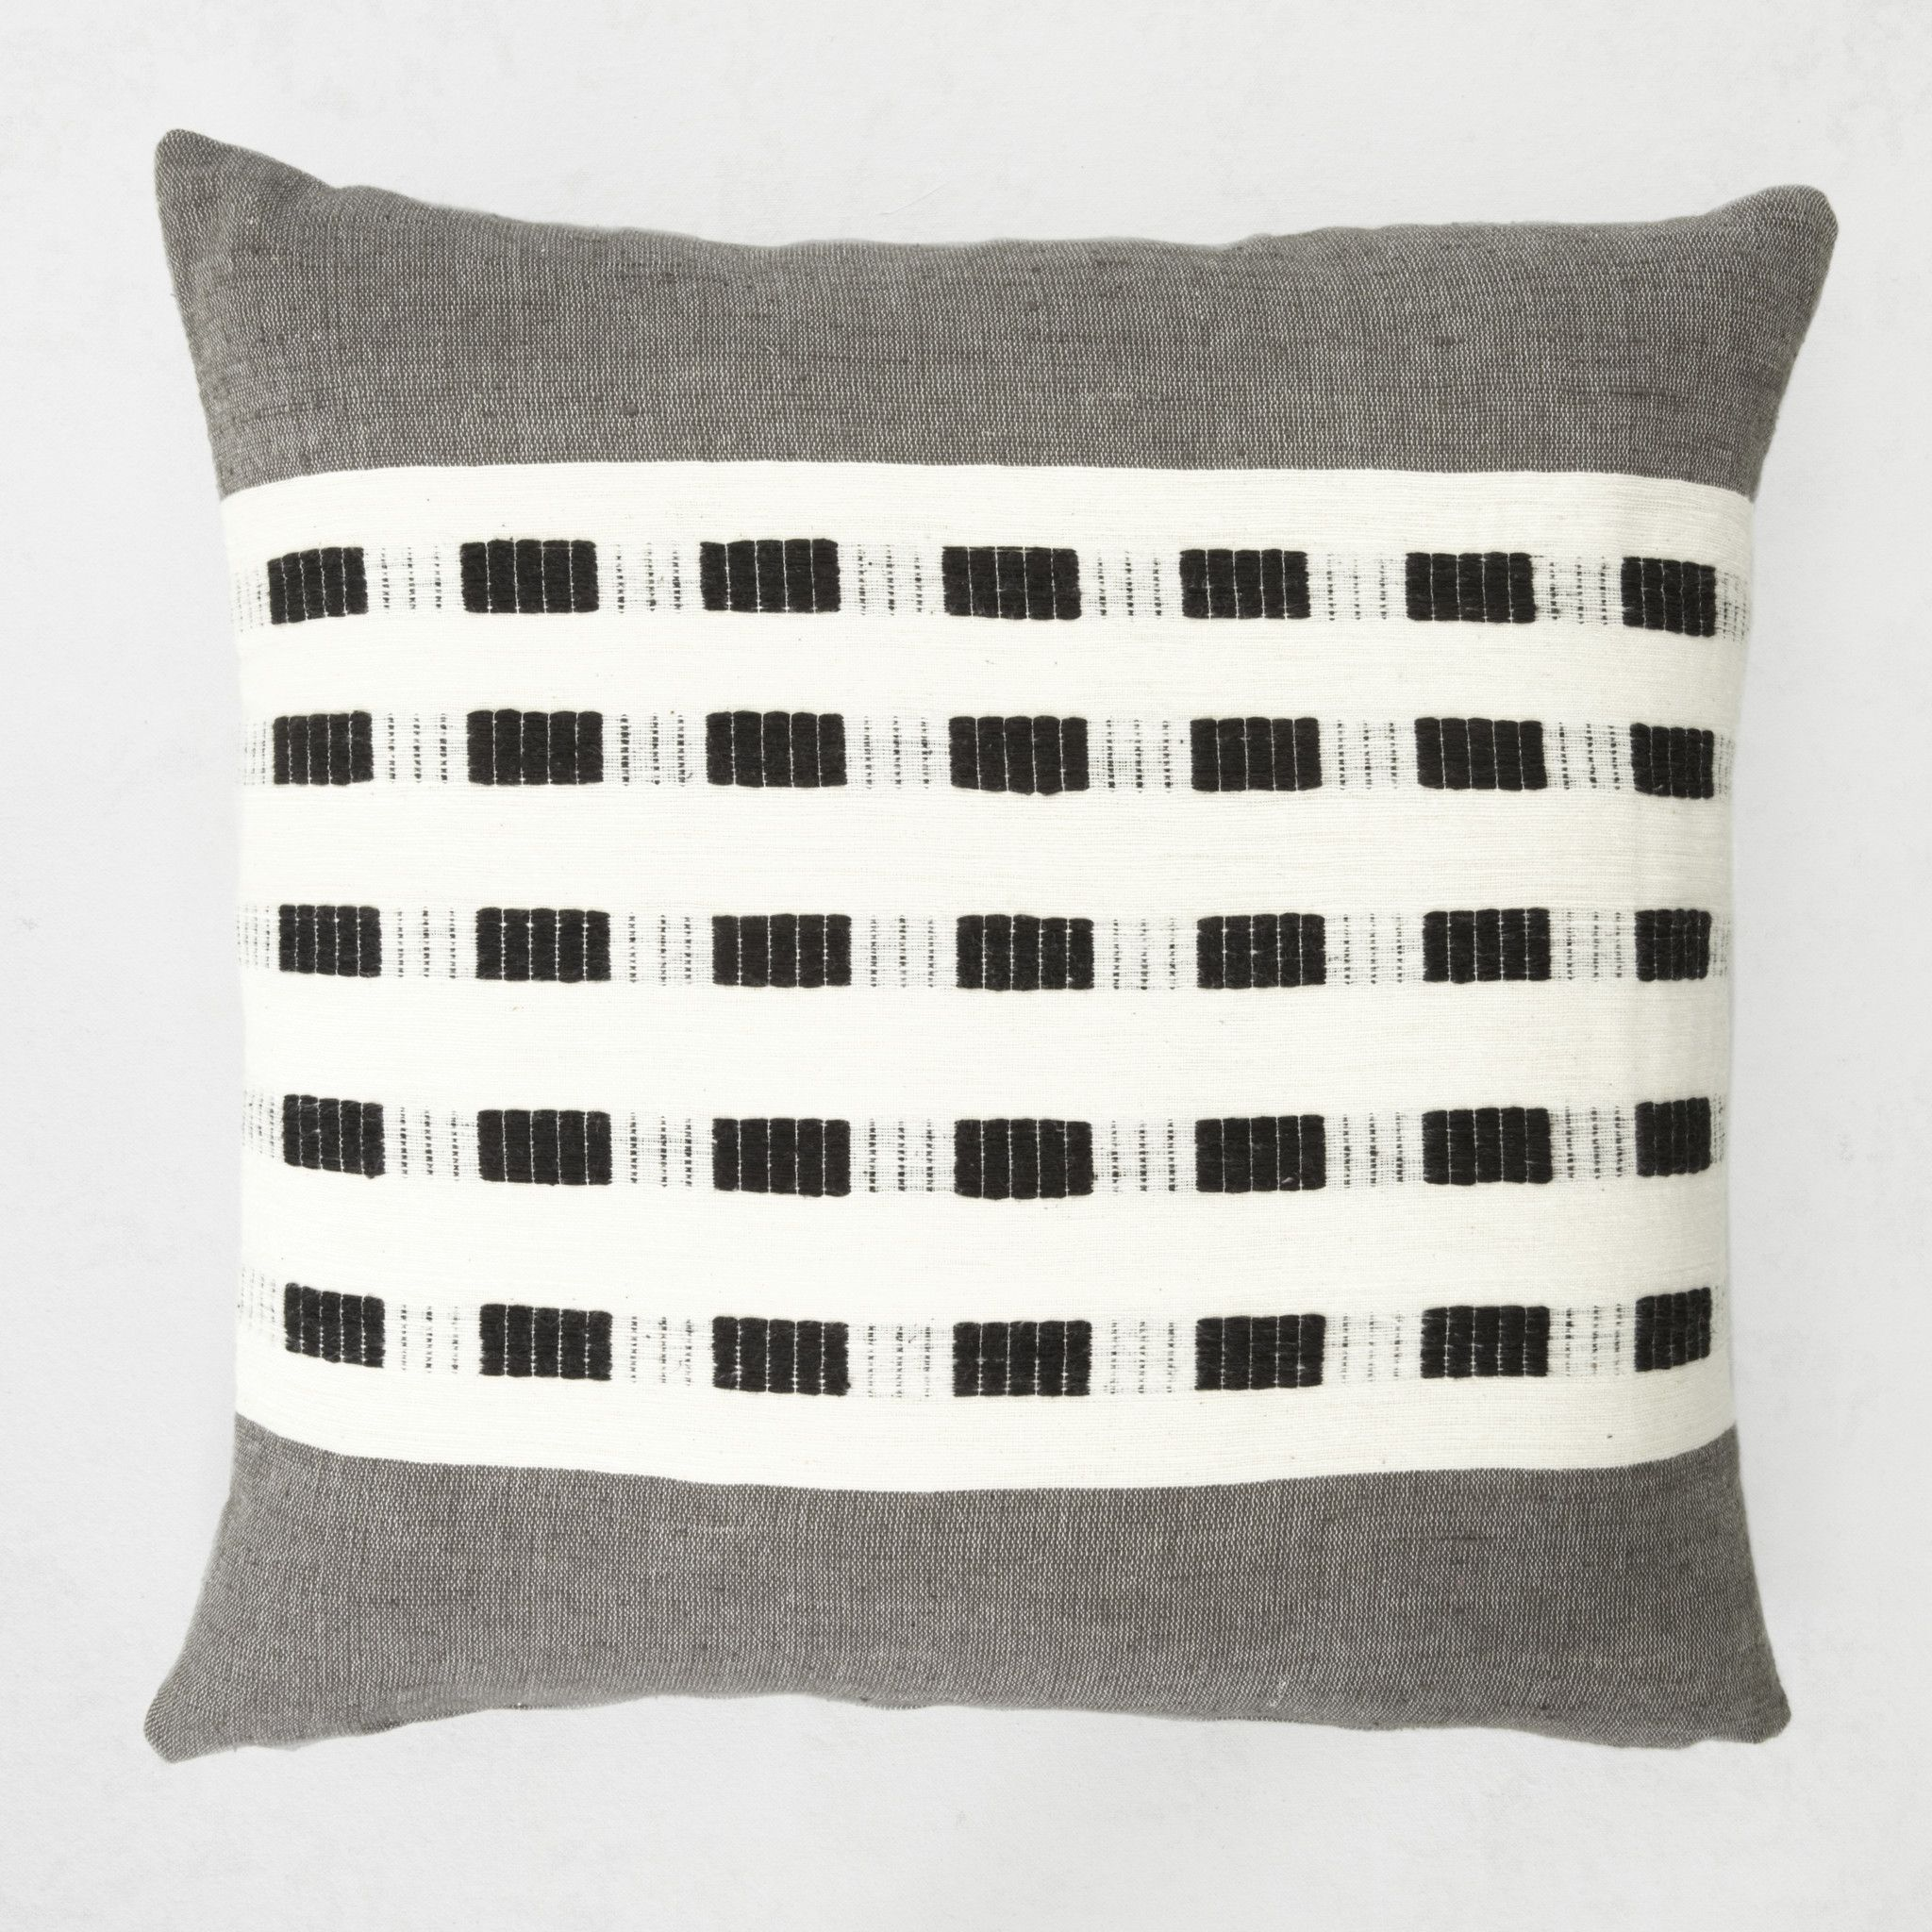 Idegu pillows throw pillows and modern